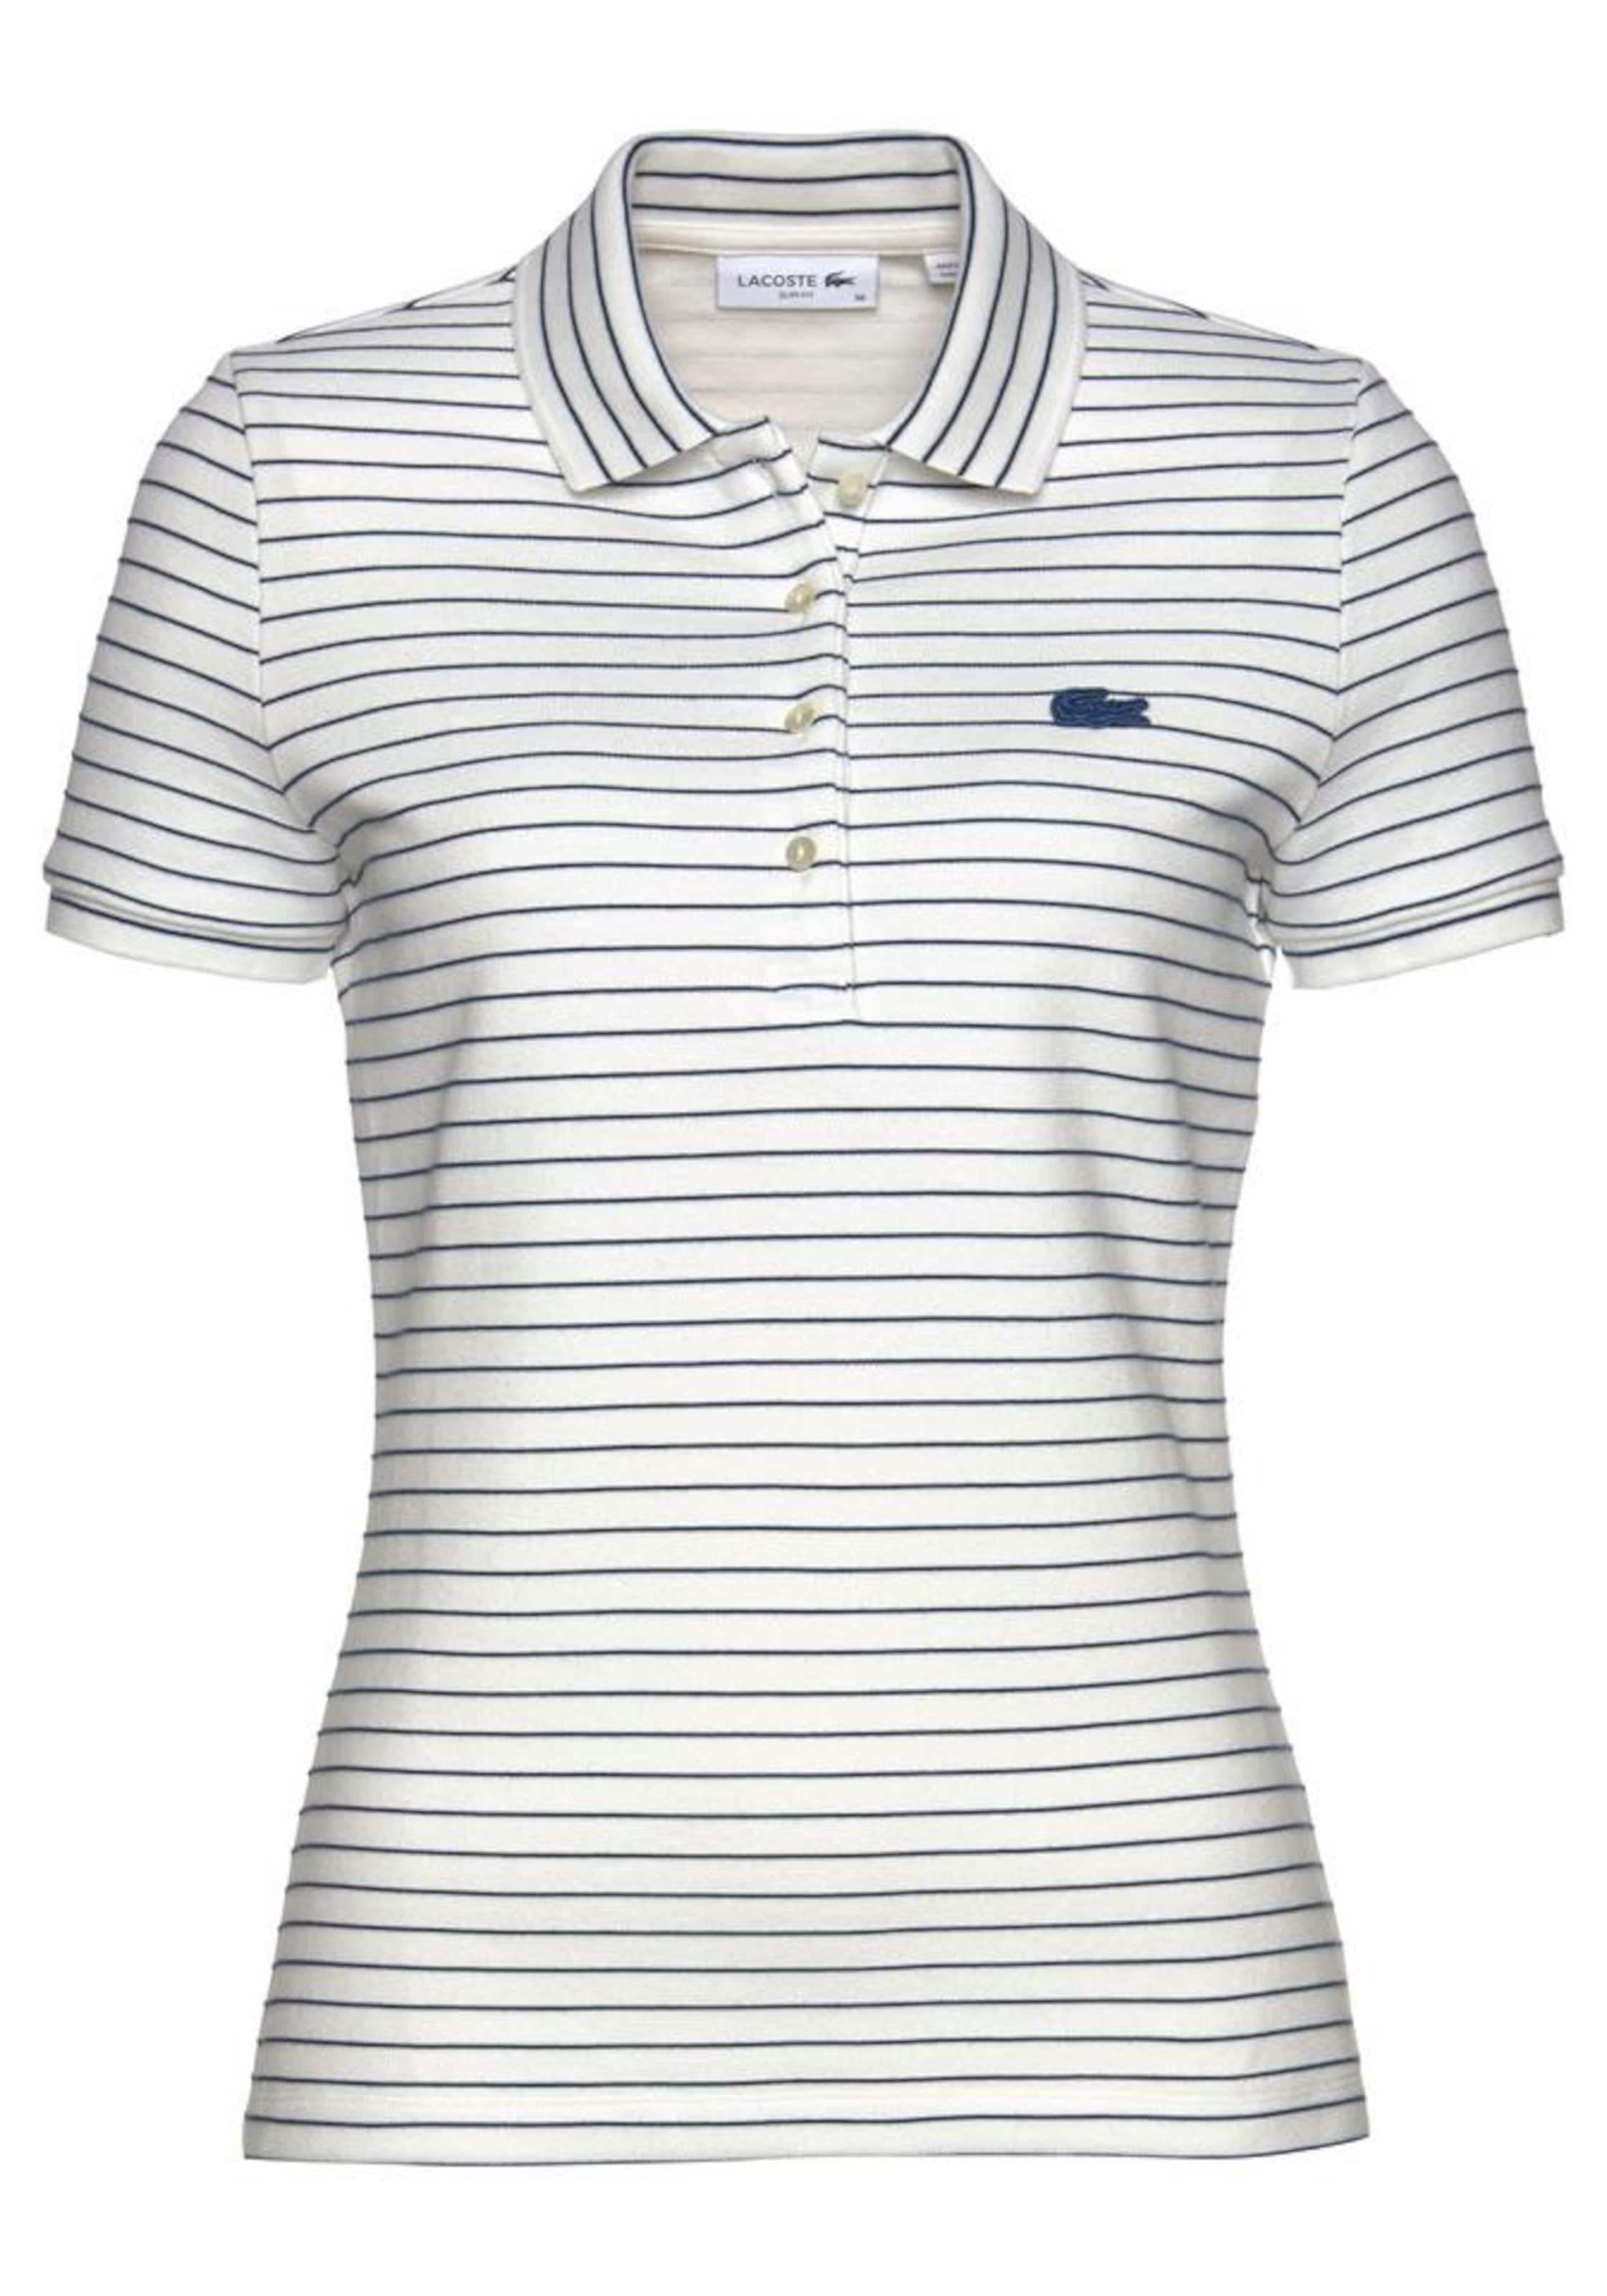 NavyWeiß In Poloshirt Poloshirt Lacoste In Lacoste PuXZikO